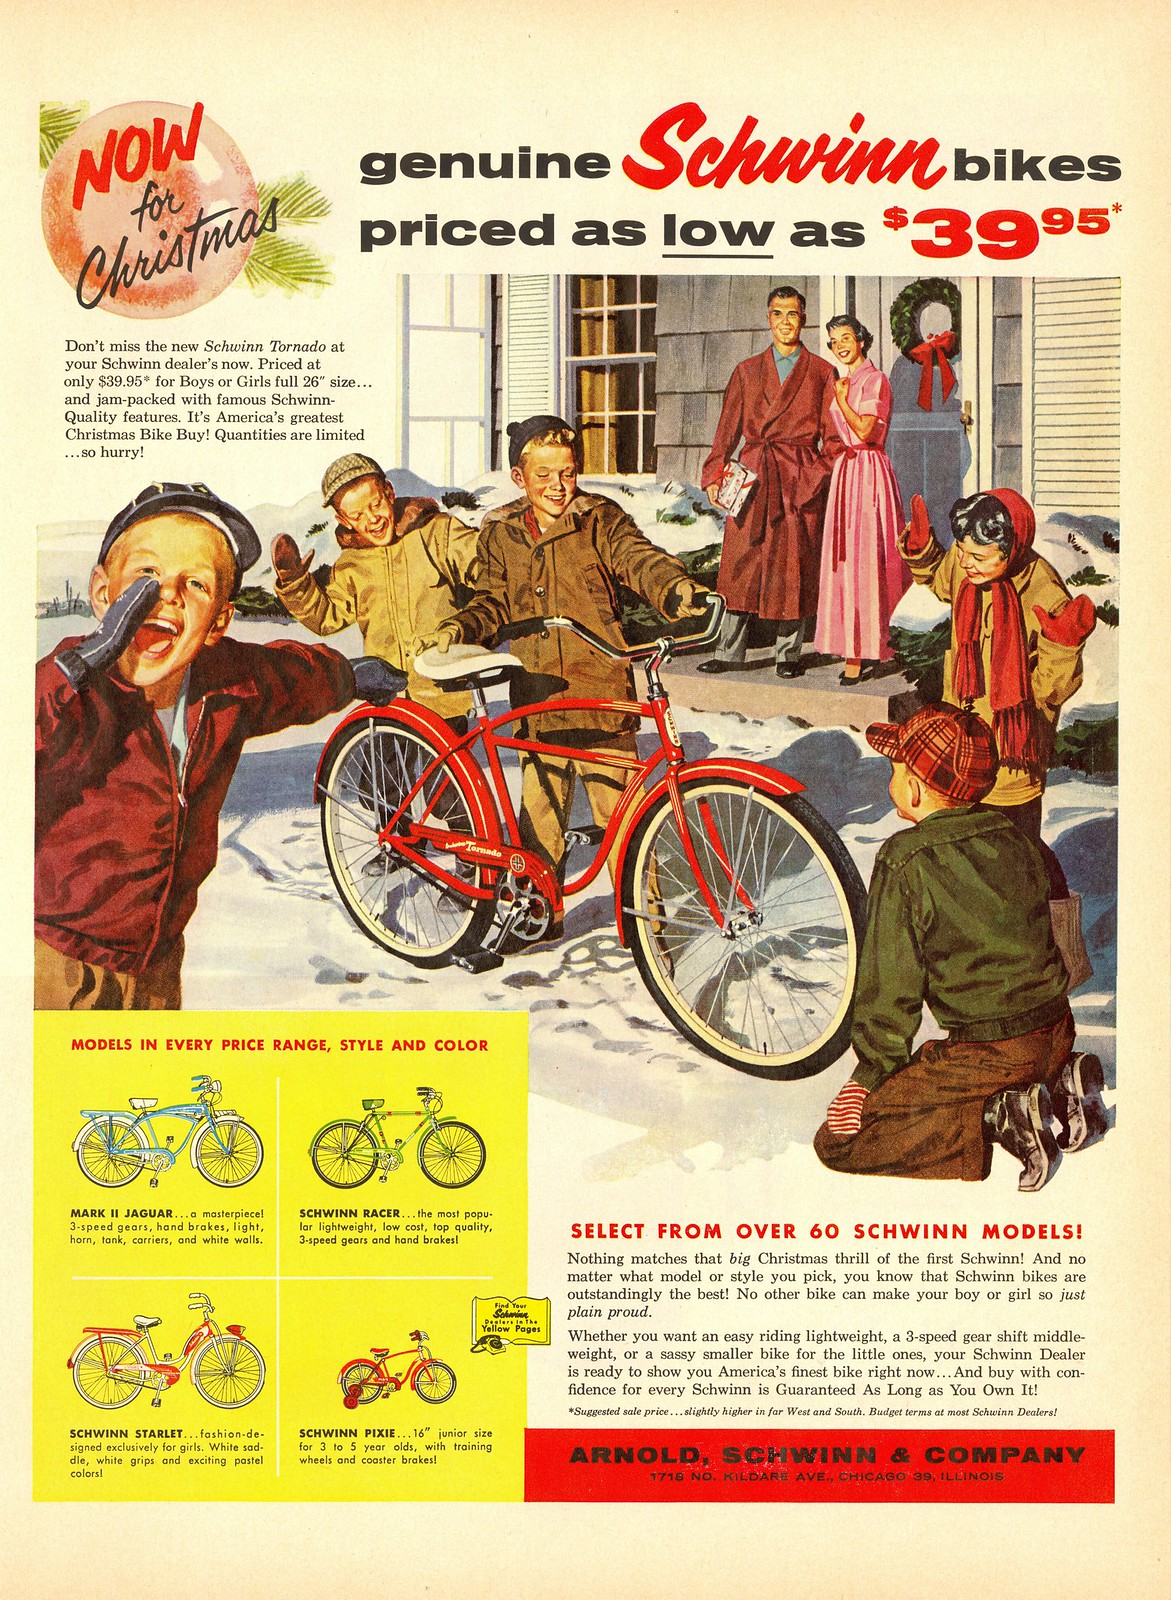 Arnold, Schwinn and Company - published in Life - November 25, 1957